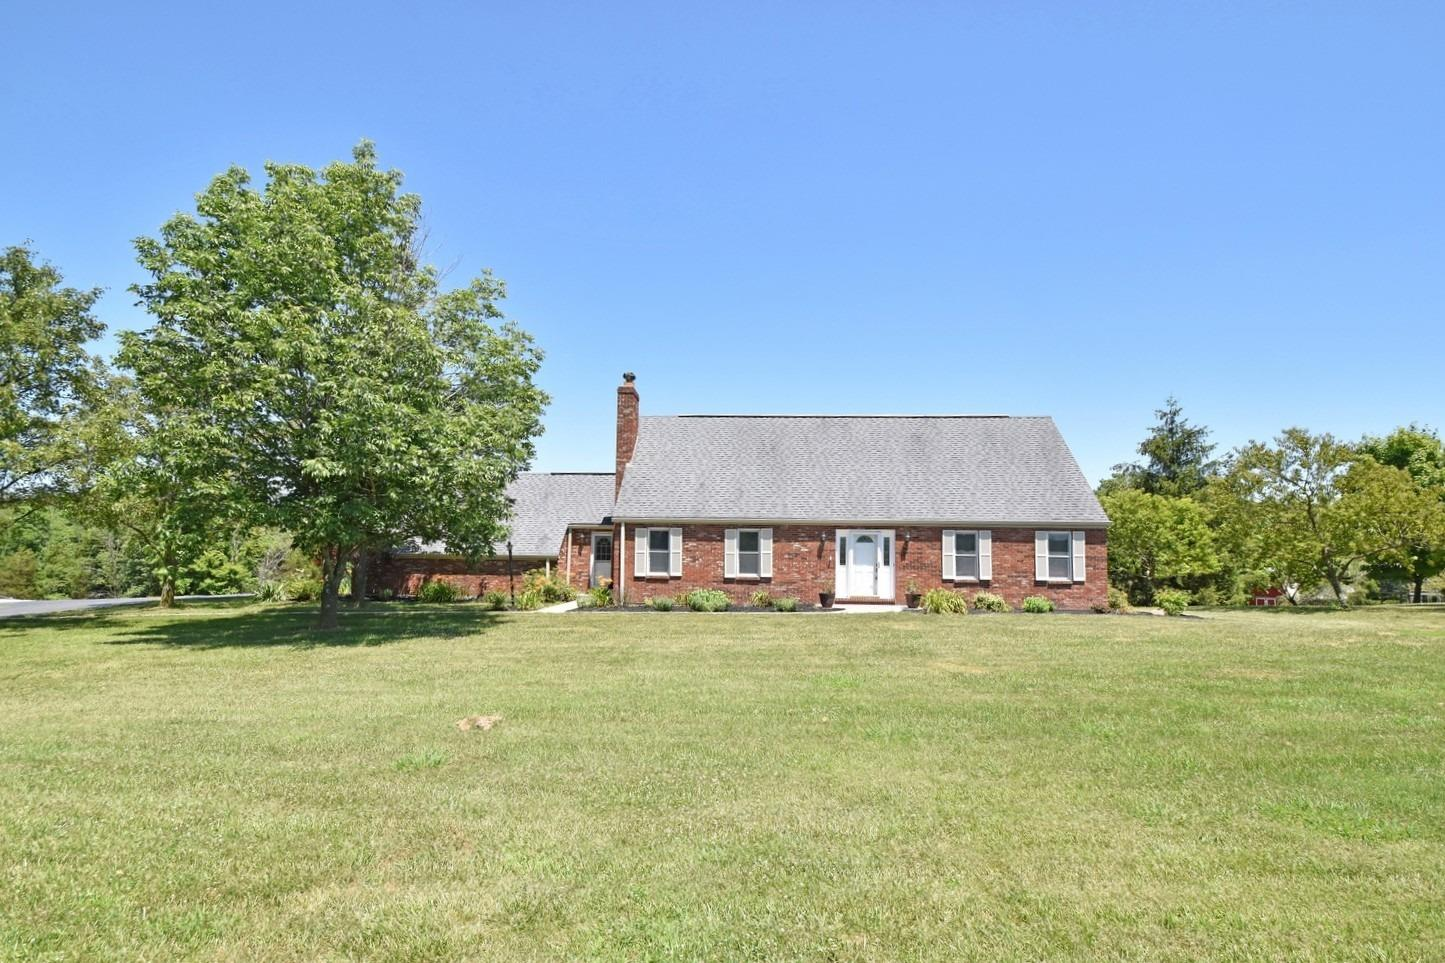 Photo 2 for 4070 Schoenling Rd Morgan Twp., OH 45053